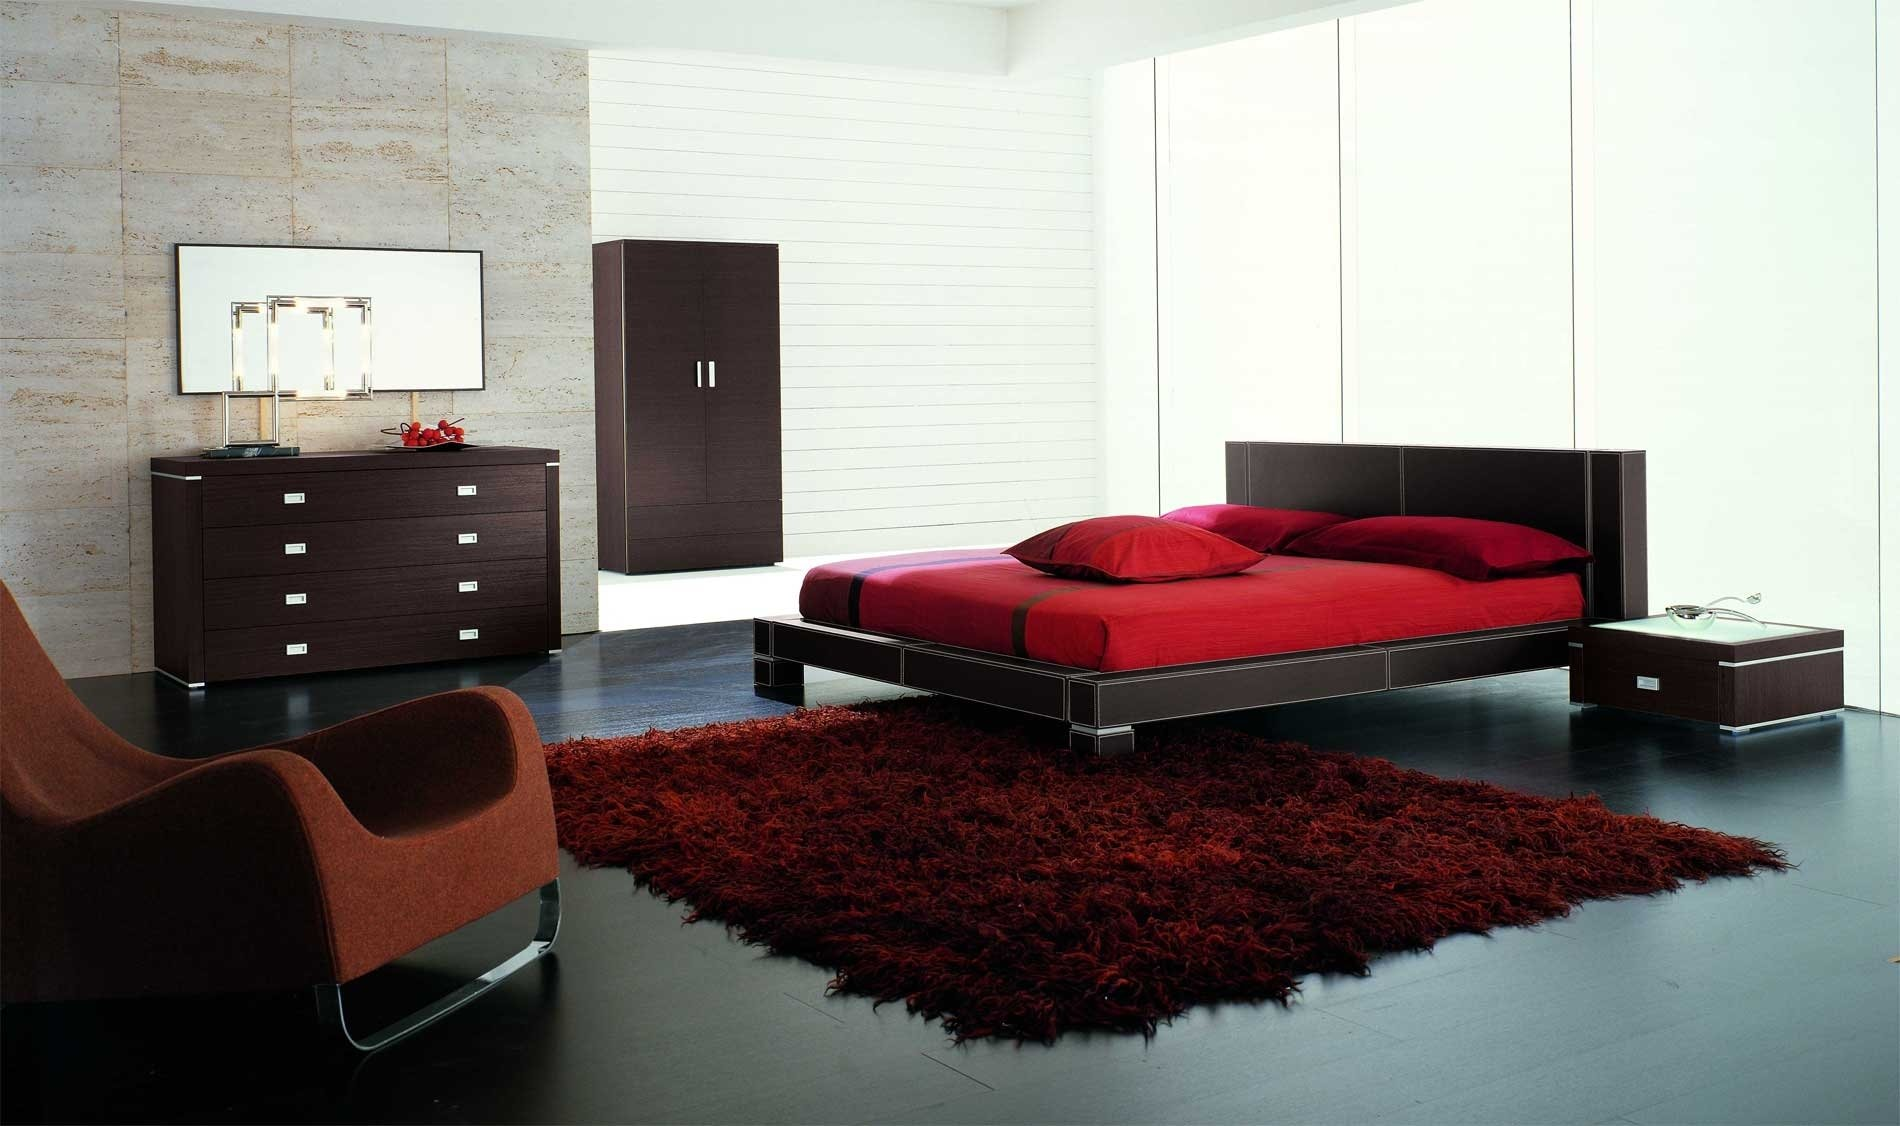 10 Trendy Red And Black Room Ideas black and red bedroom ideas for something unique and attrative nurani 2021